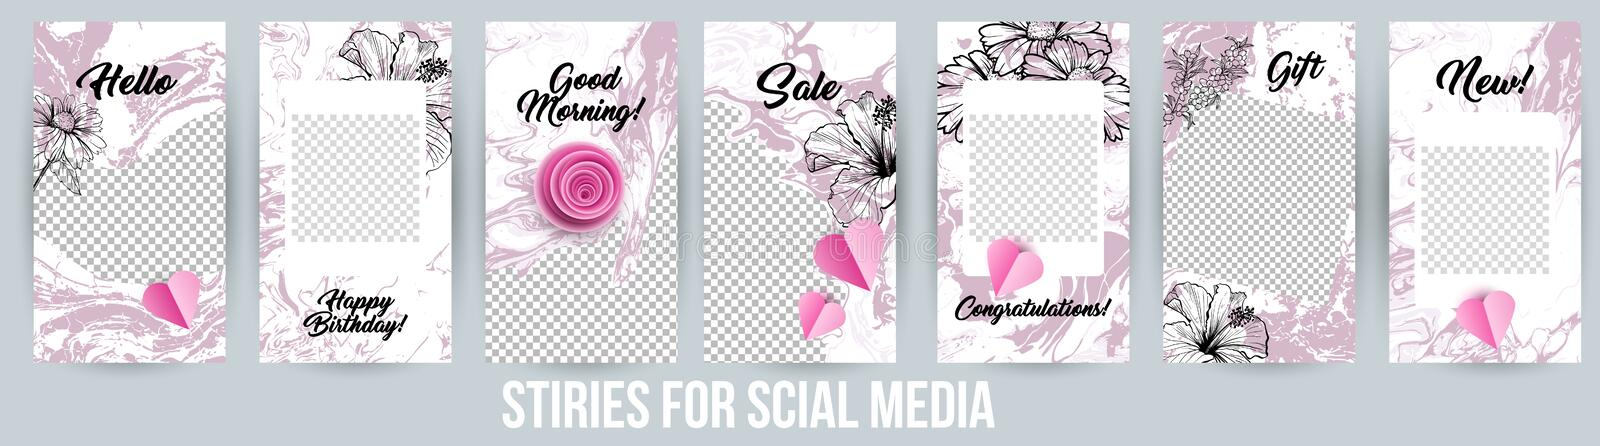 Acrylic Paintings Instagram Stories Creative Modern Photo Frames Pack. stock illustration